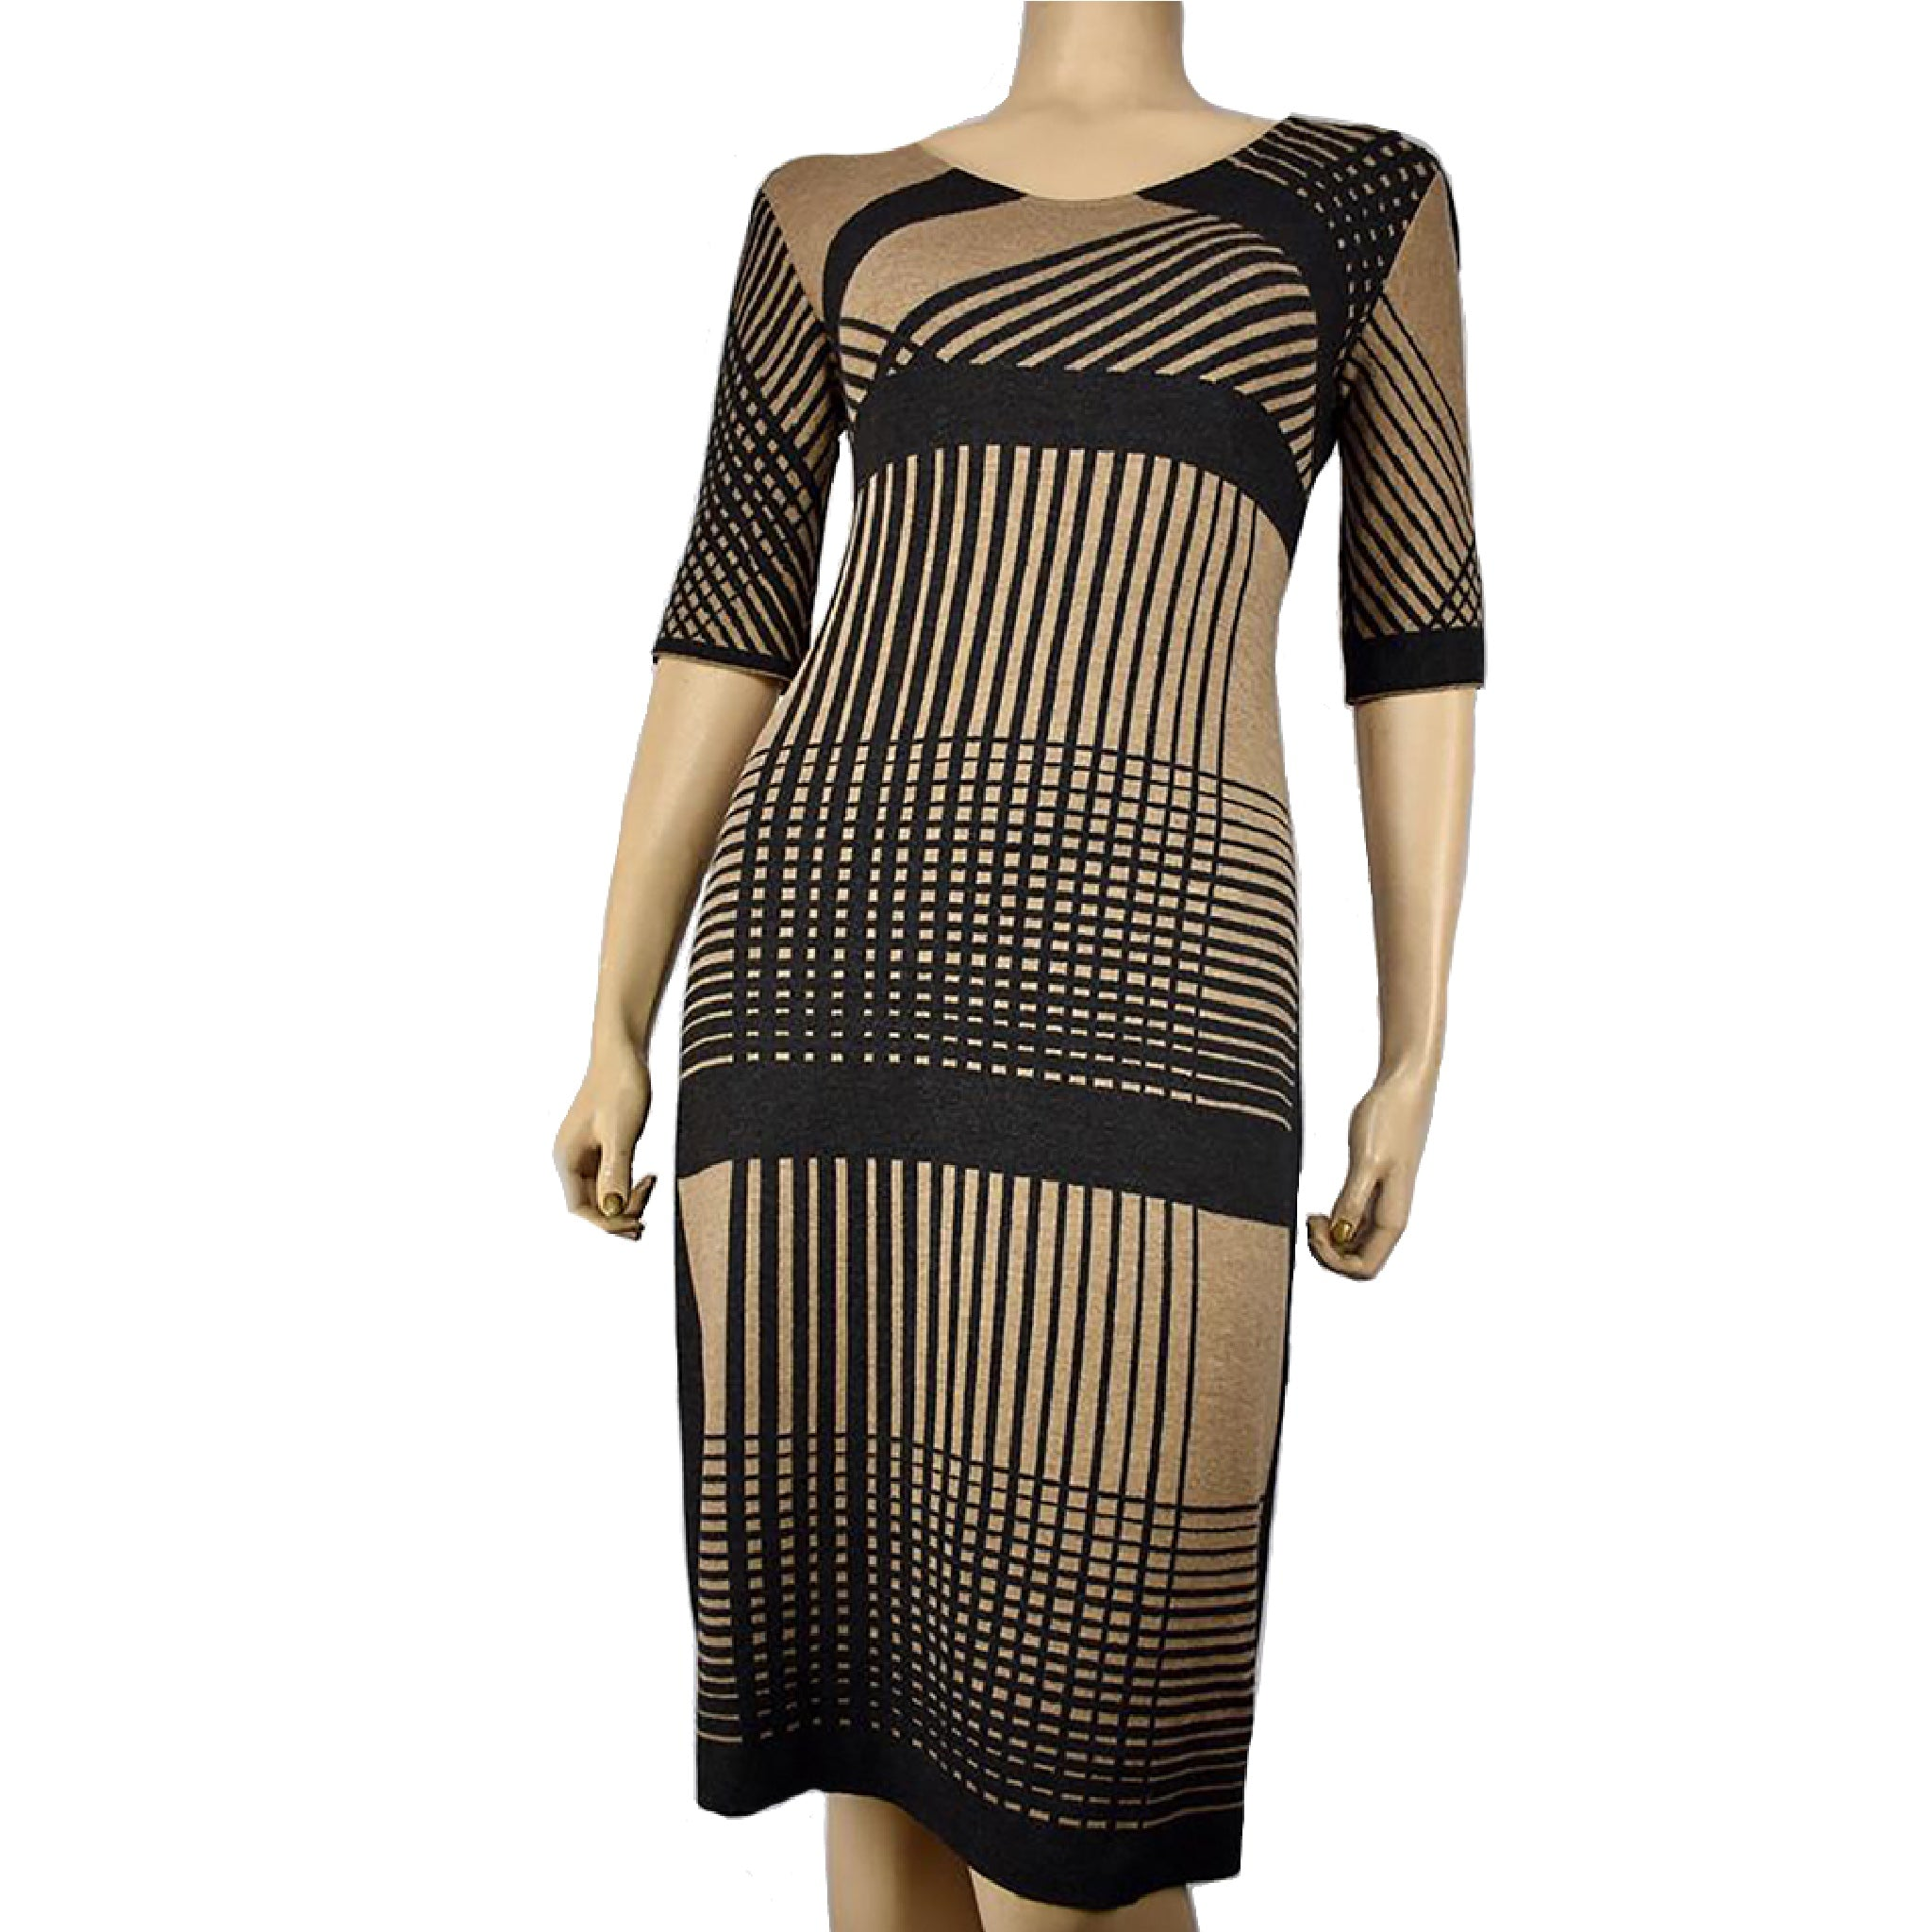 Corsica Dress Charcoal and Beige